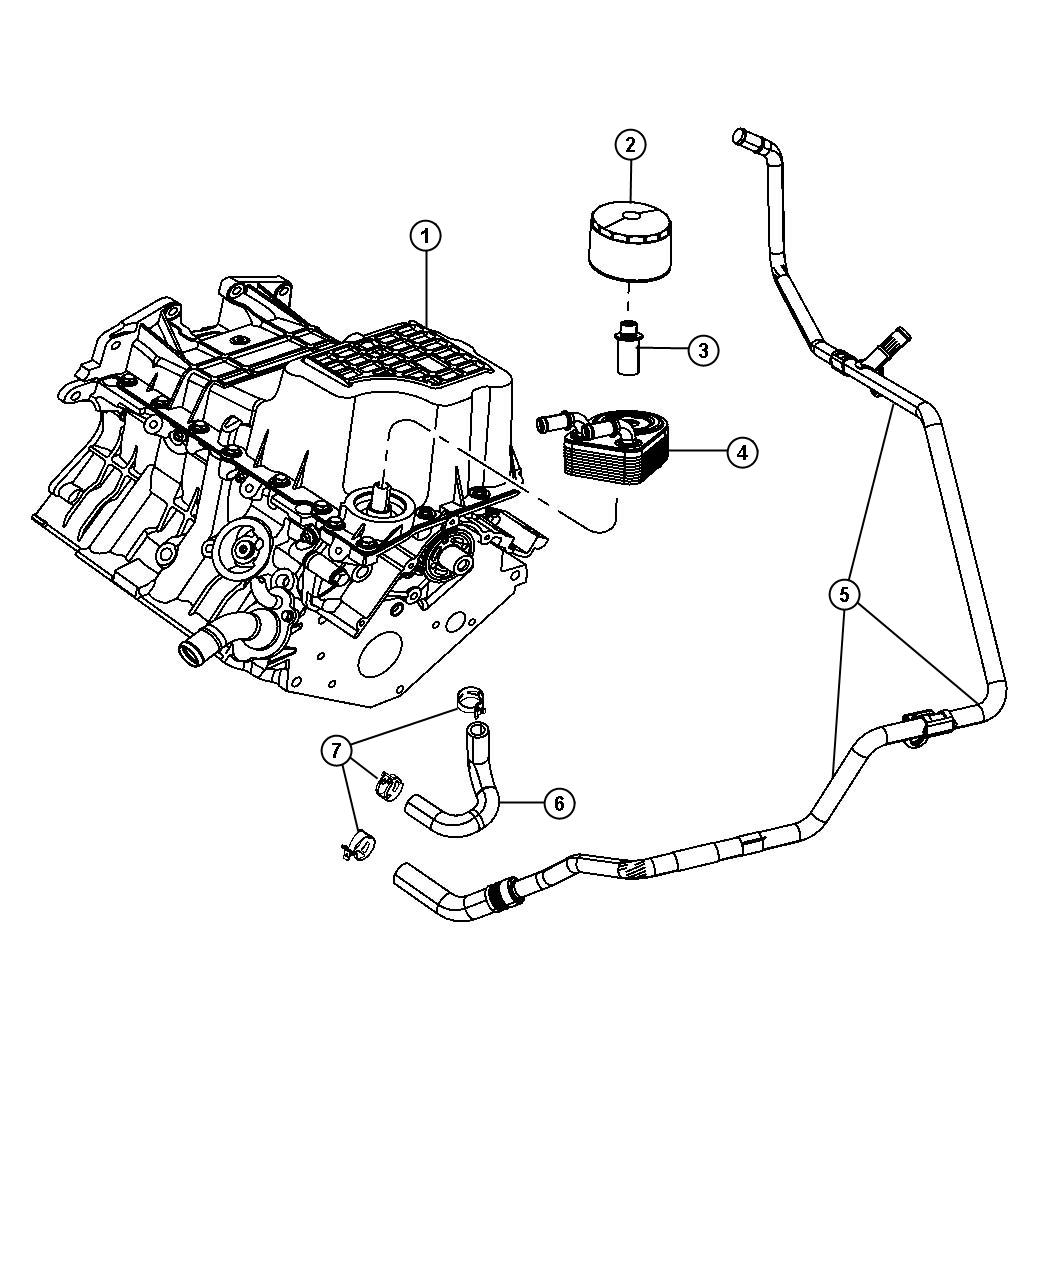 2000 Chrysler Concorde Fuse Box Location furthermore 1997 Chrysler Lhs Engine Diagram together with Chrysler Concorde Engine Diagram as well 1997 Chevy Venture Engine Diagram in addition 2001 Dodge Ram 1500 5 2 L Cam Shaft Sensor. on 2000 chrysler lhs fuel pump wiring diagram